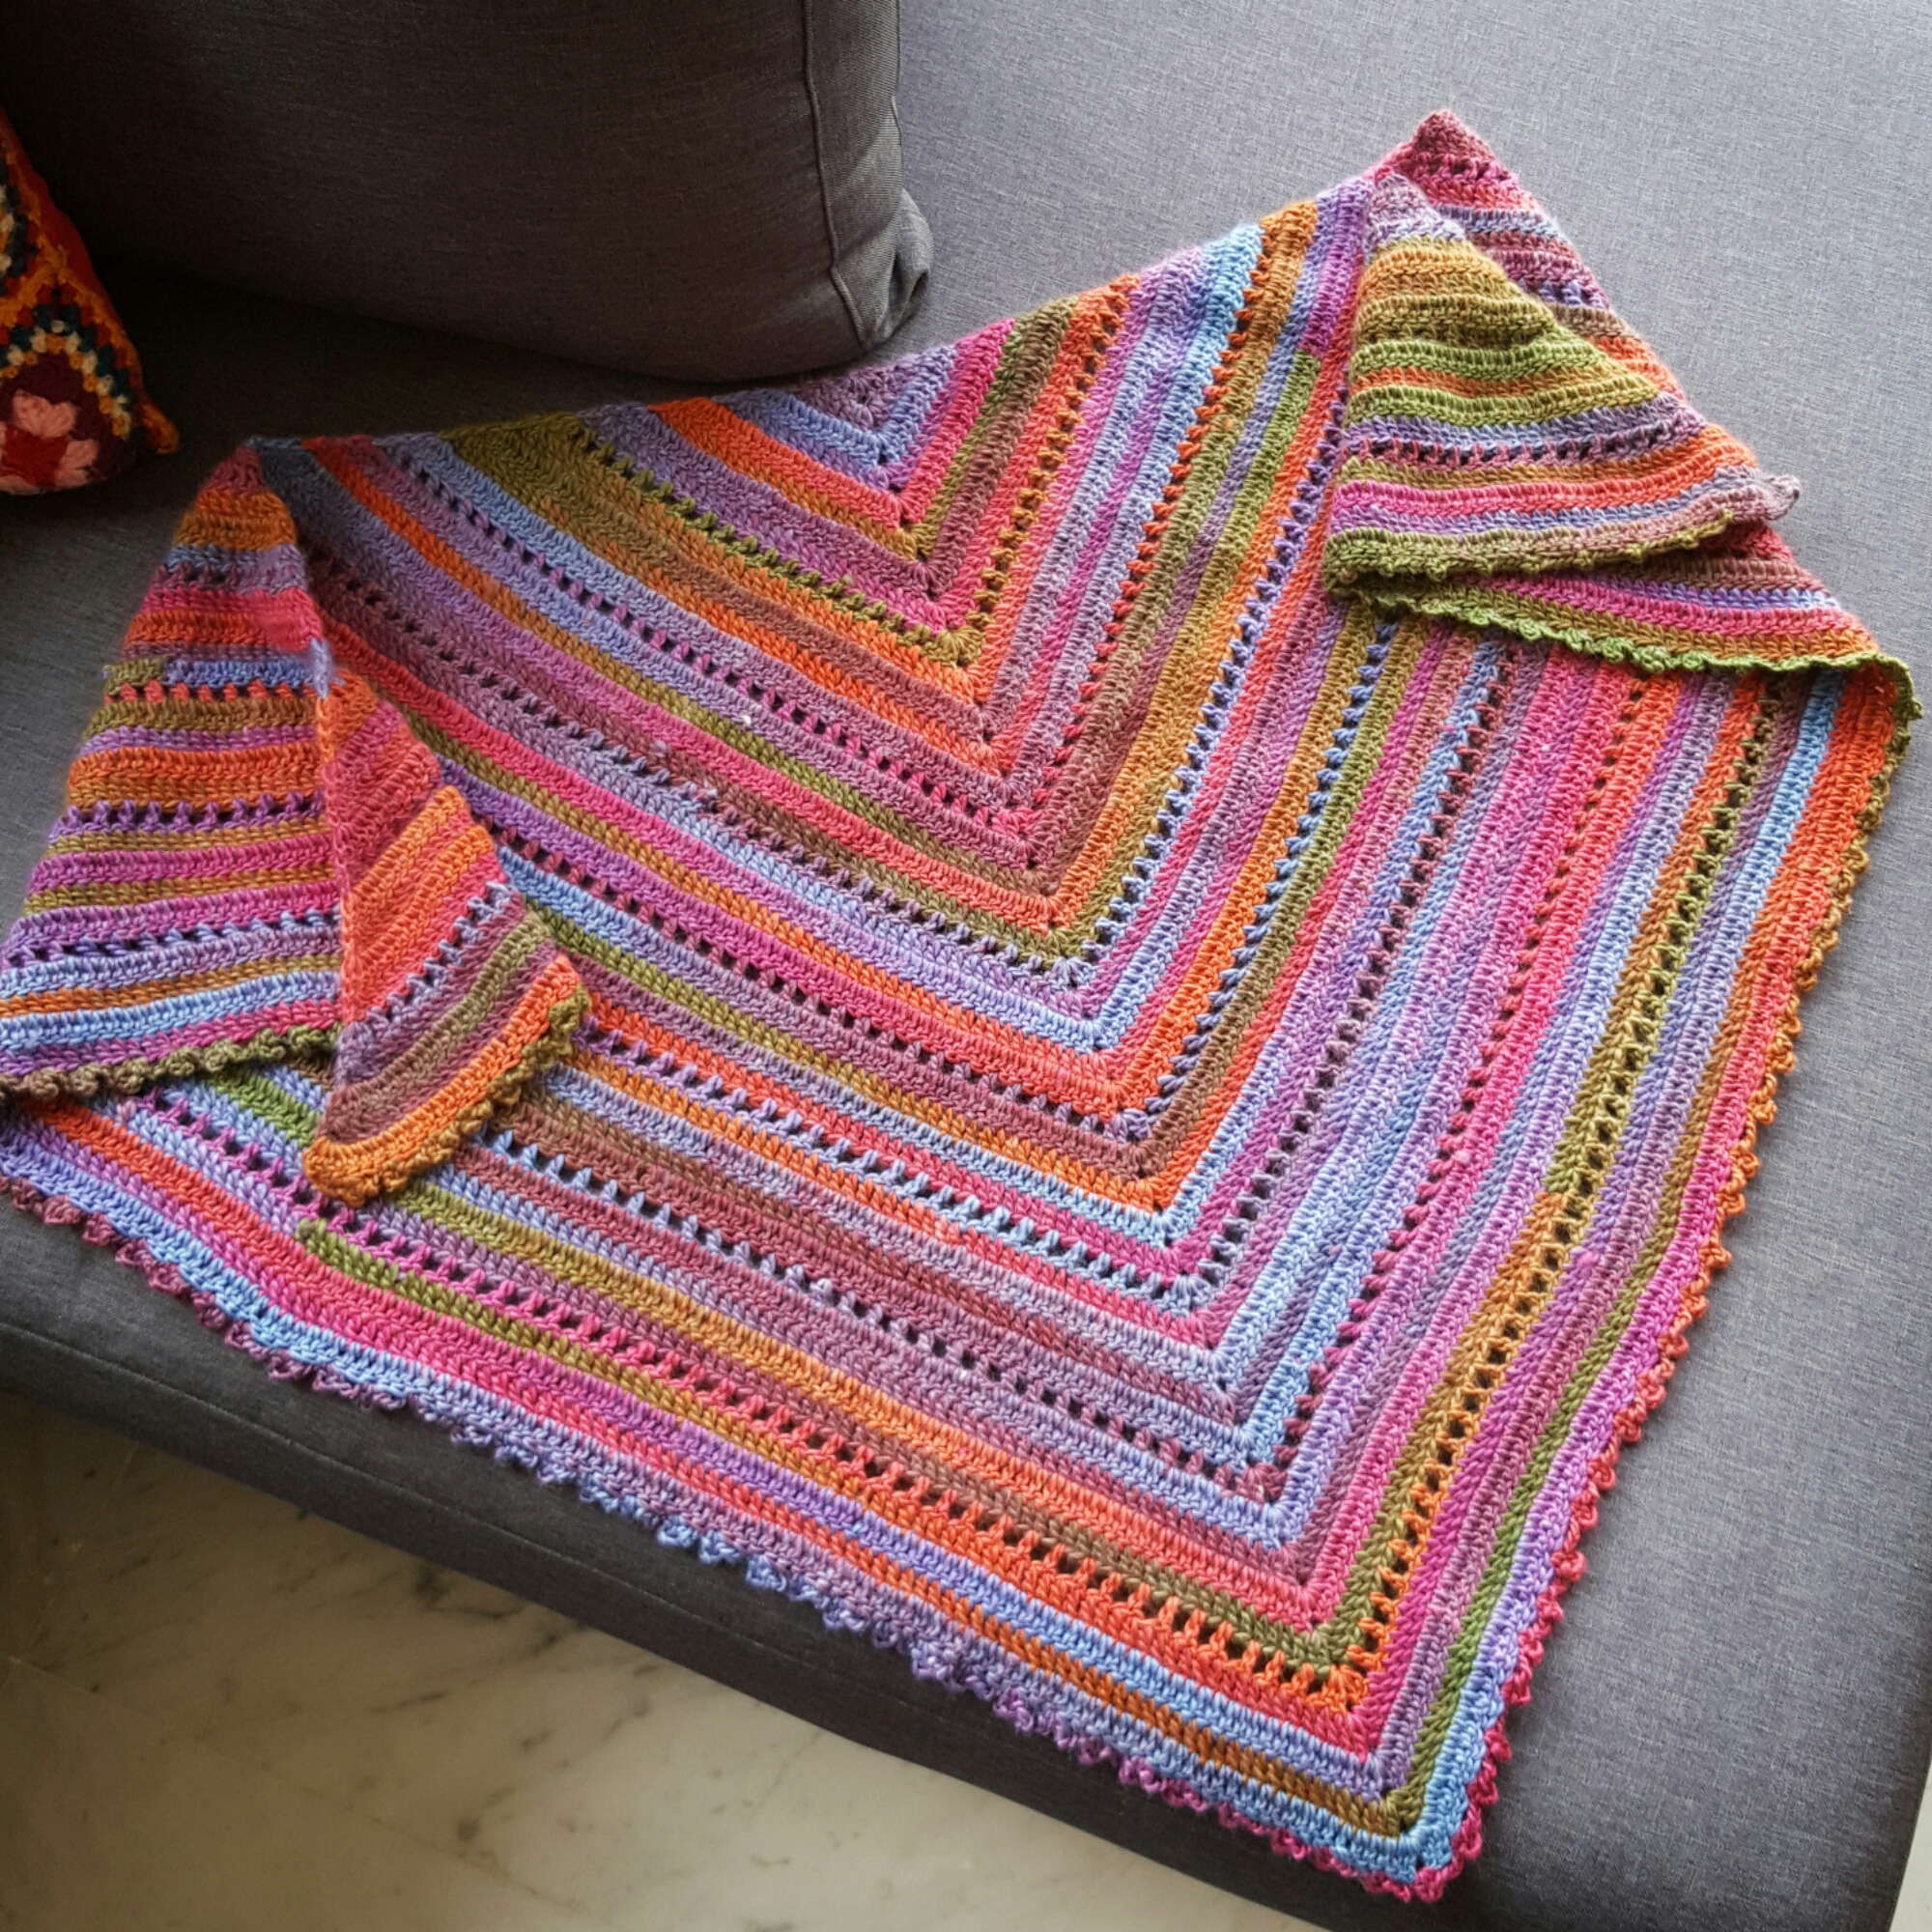 The simple shawl